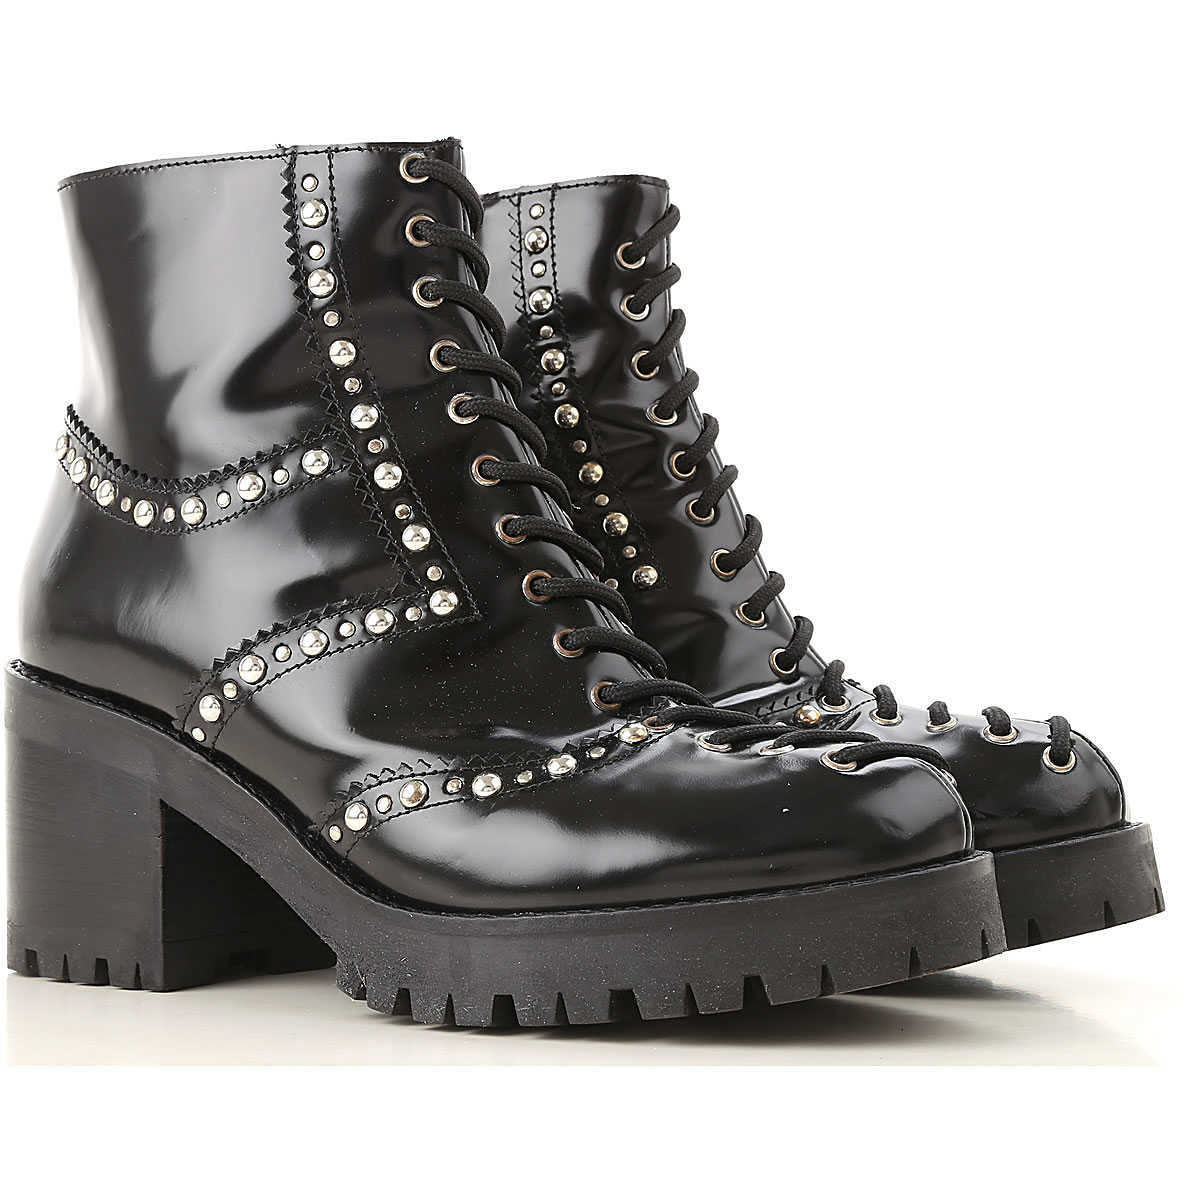 Alexander McQueen McQ Boots for Women Booties On Sale in Outlet - GOOFASH